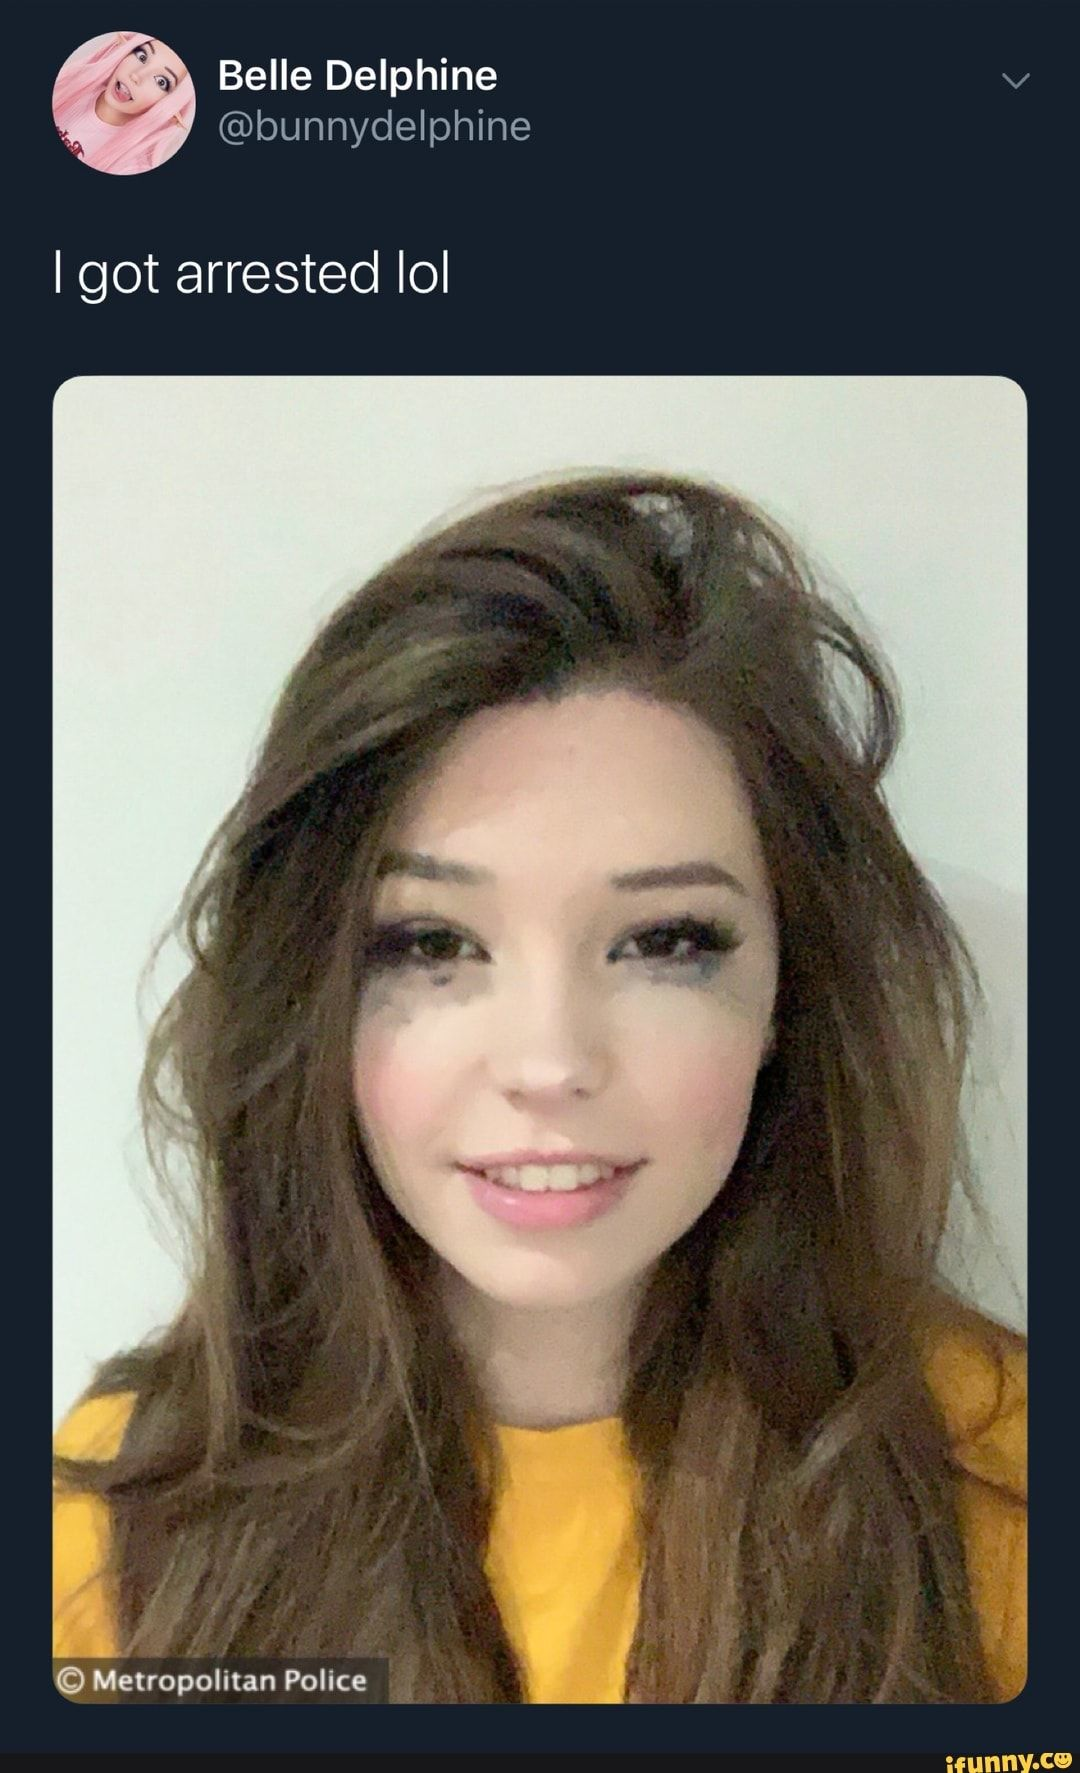 Belle Delphine iFunny ) Beauty, Mug shots, Long hair